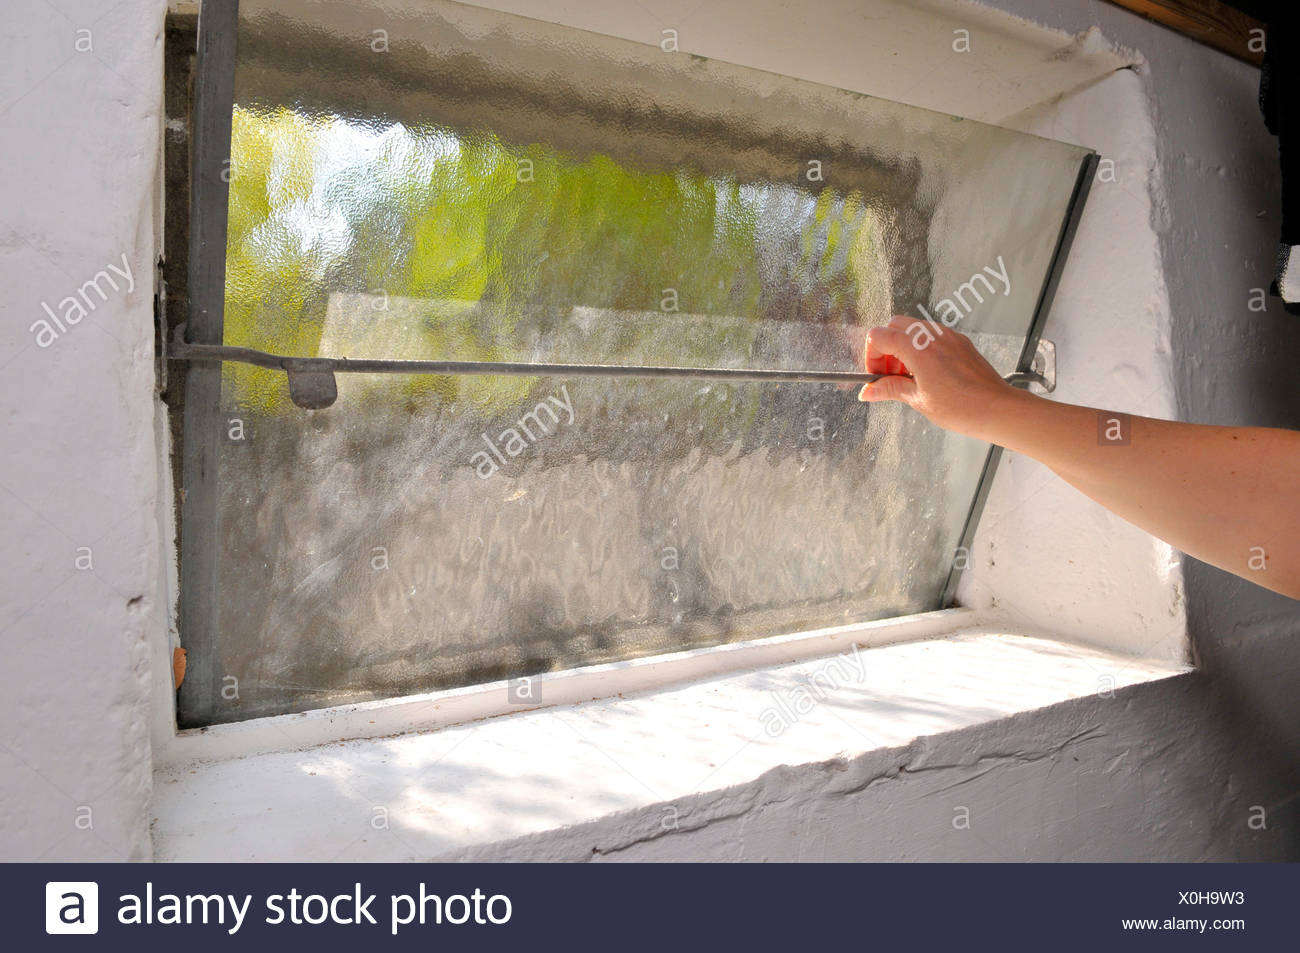 Woman opening a basement window to let some air in - Stock Image